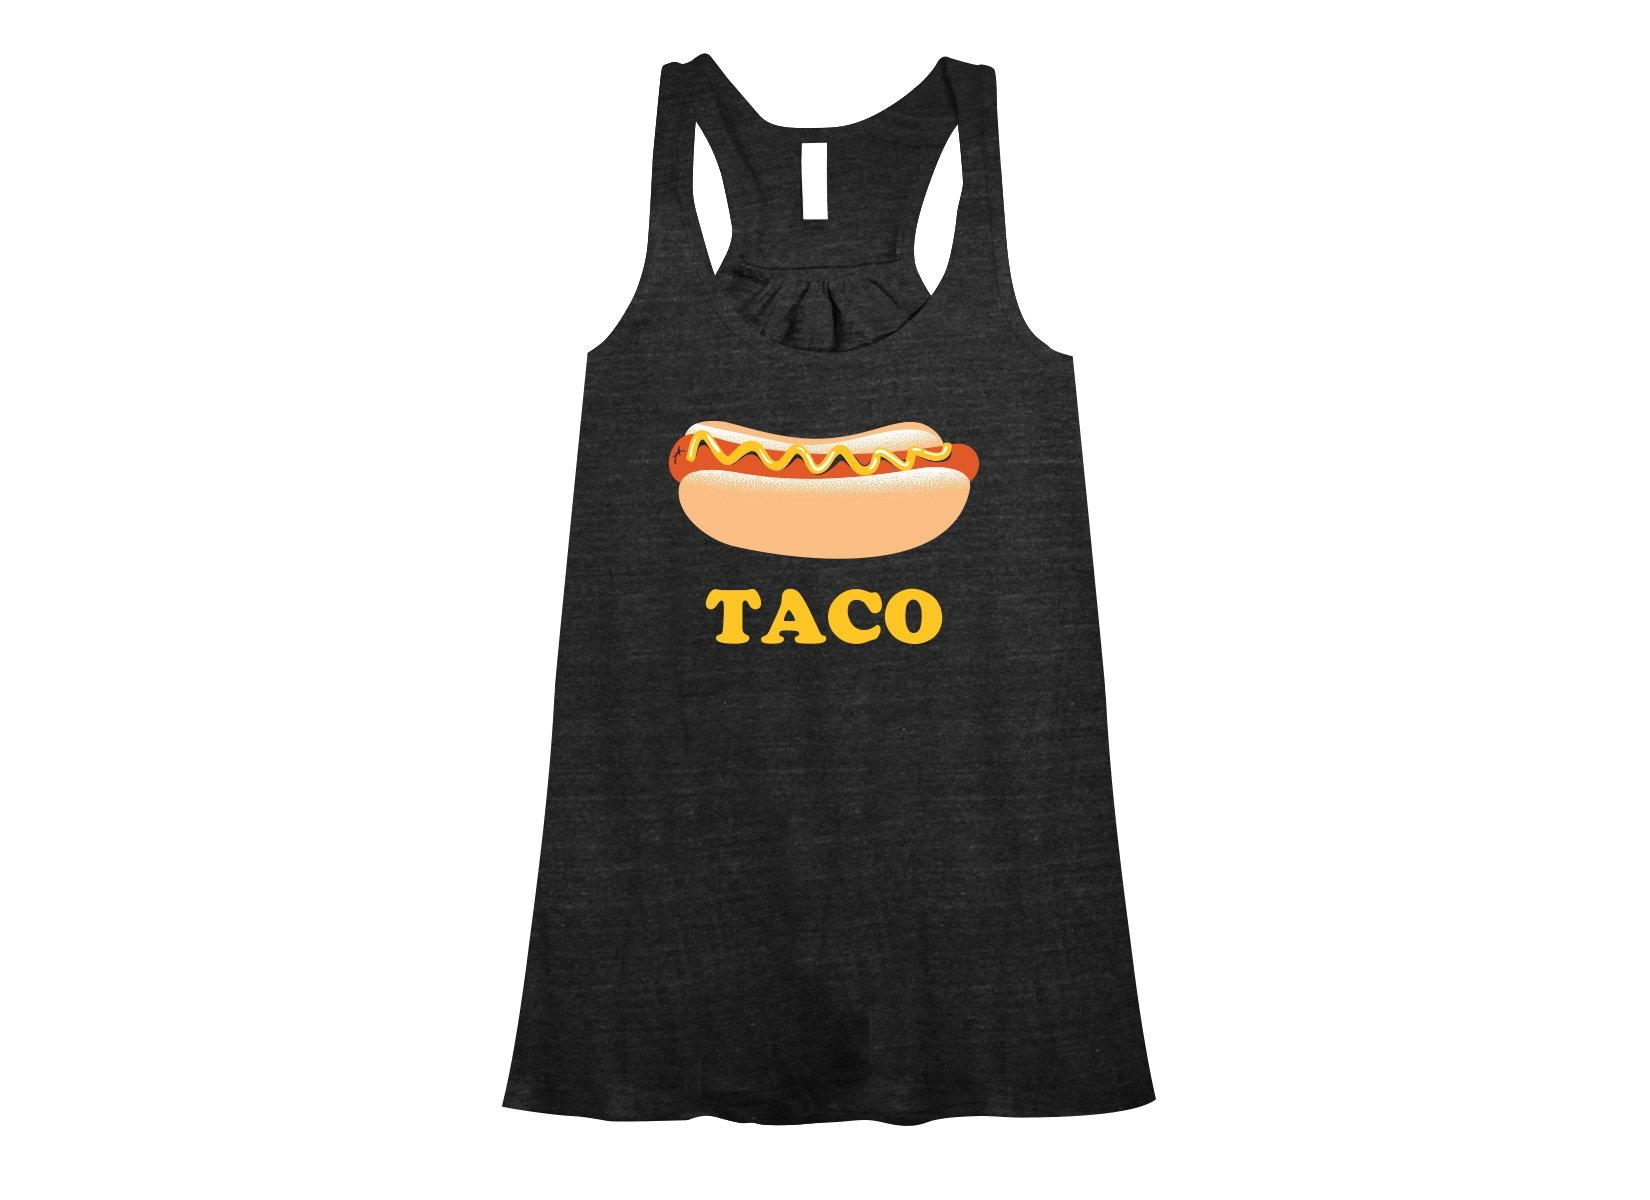 Hotdog Taco on Womens Tanks T-Shirt